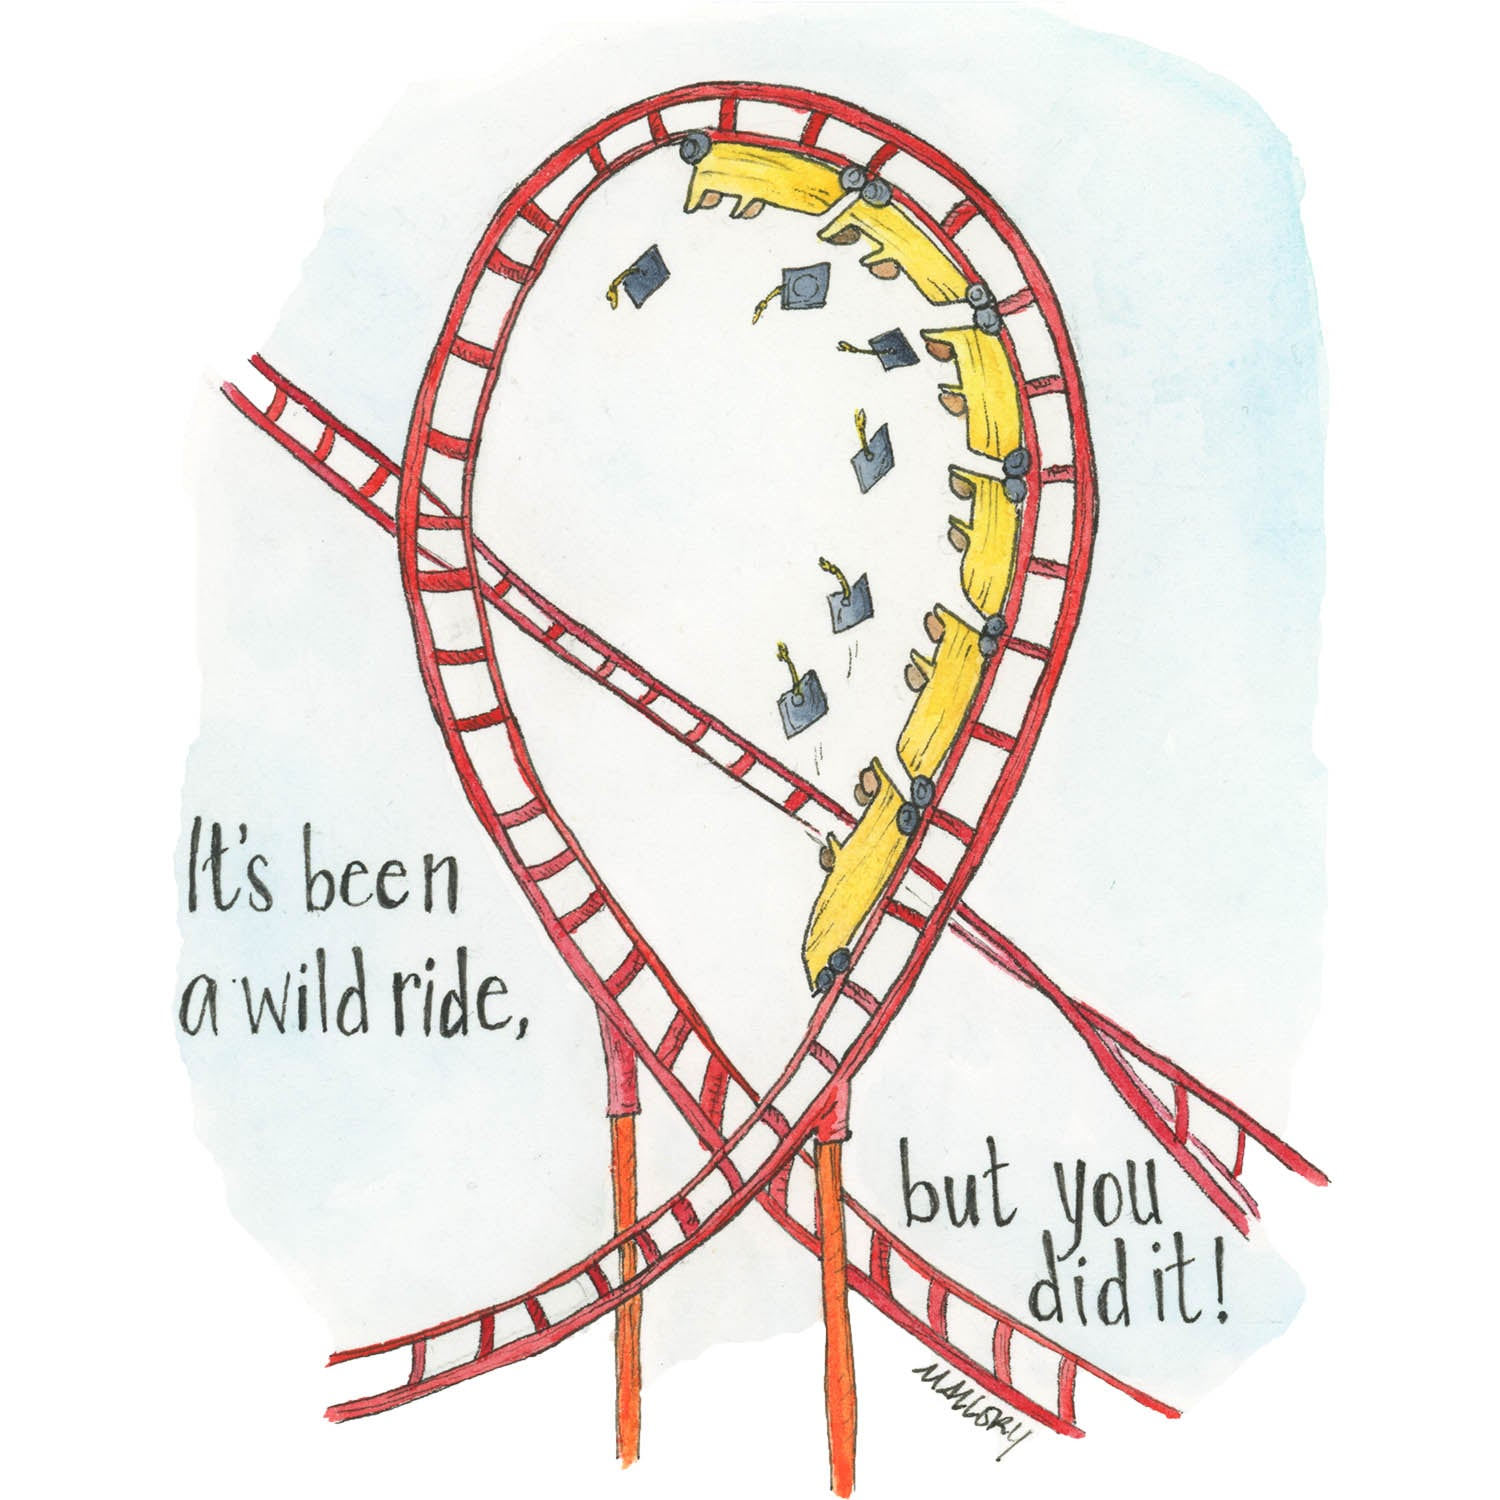 Wild Ride Graduation Card